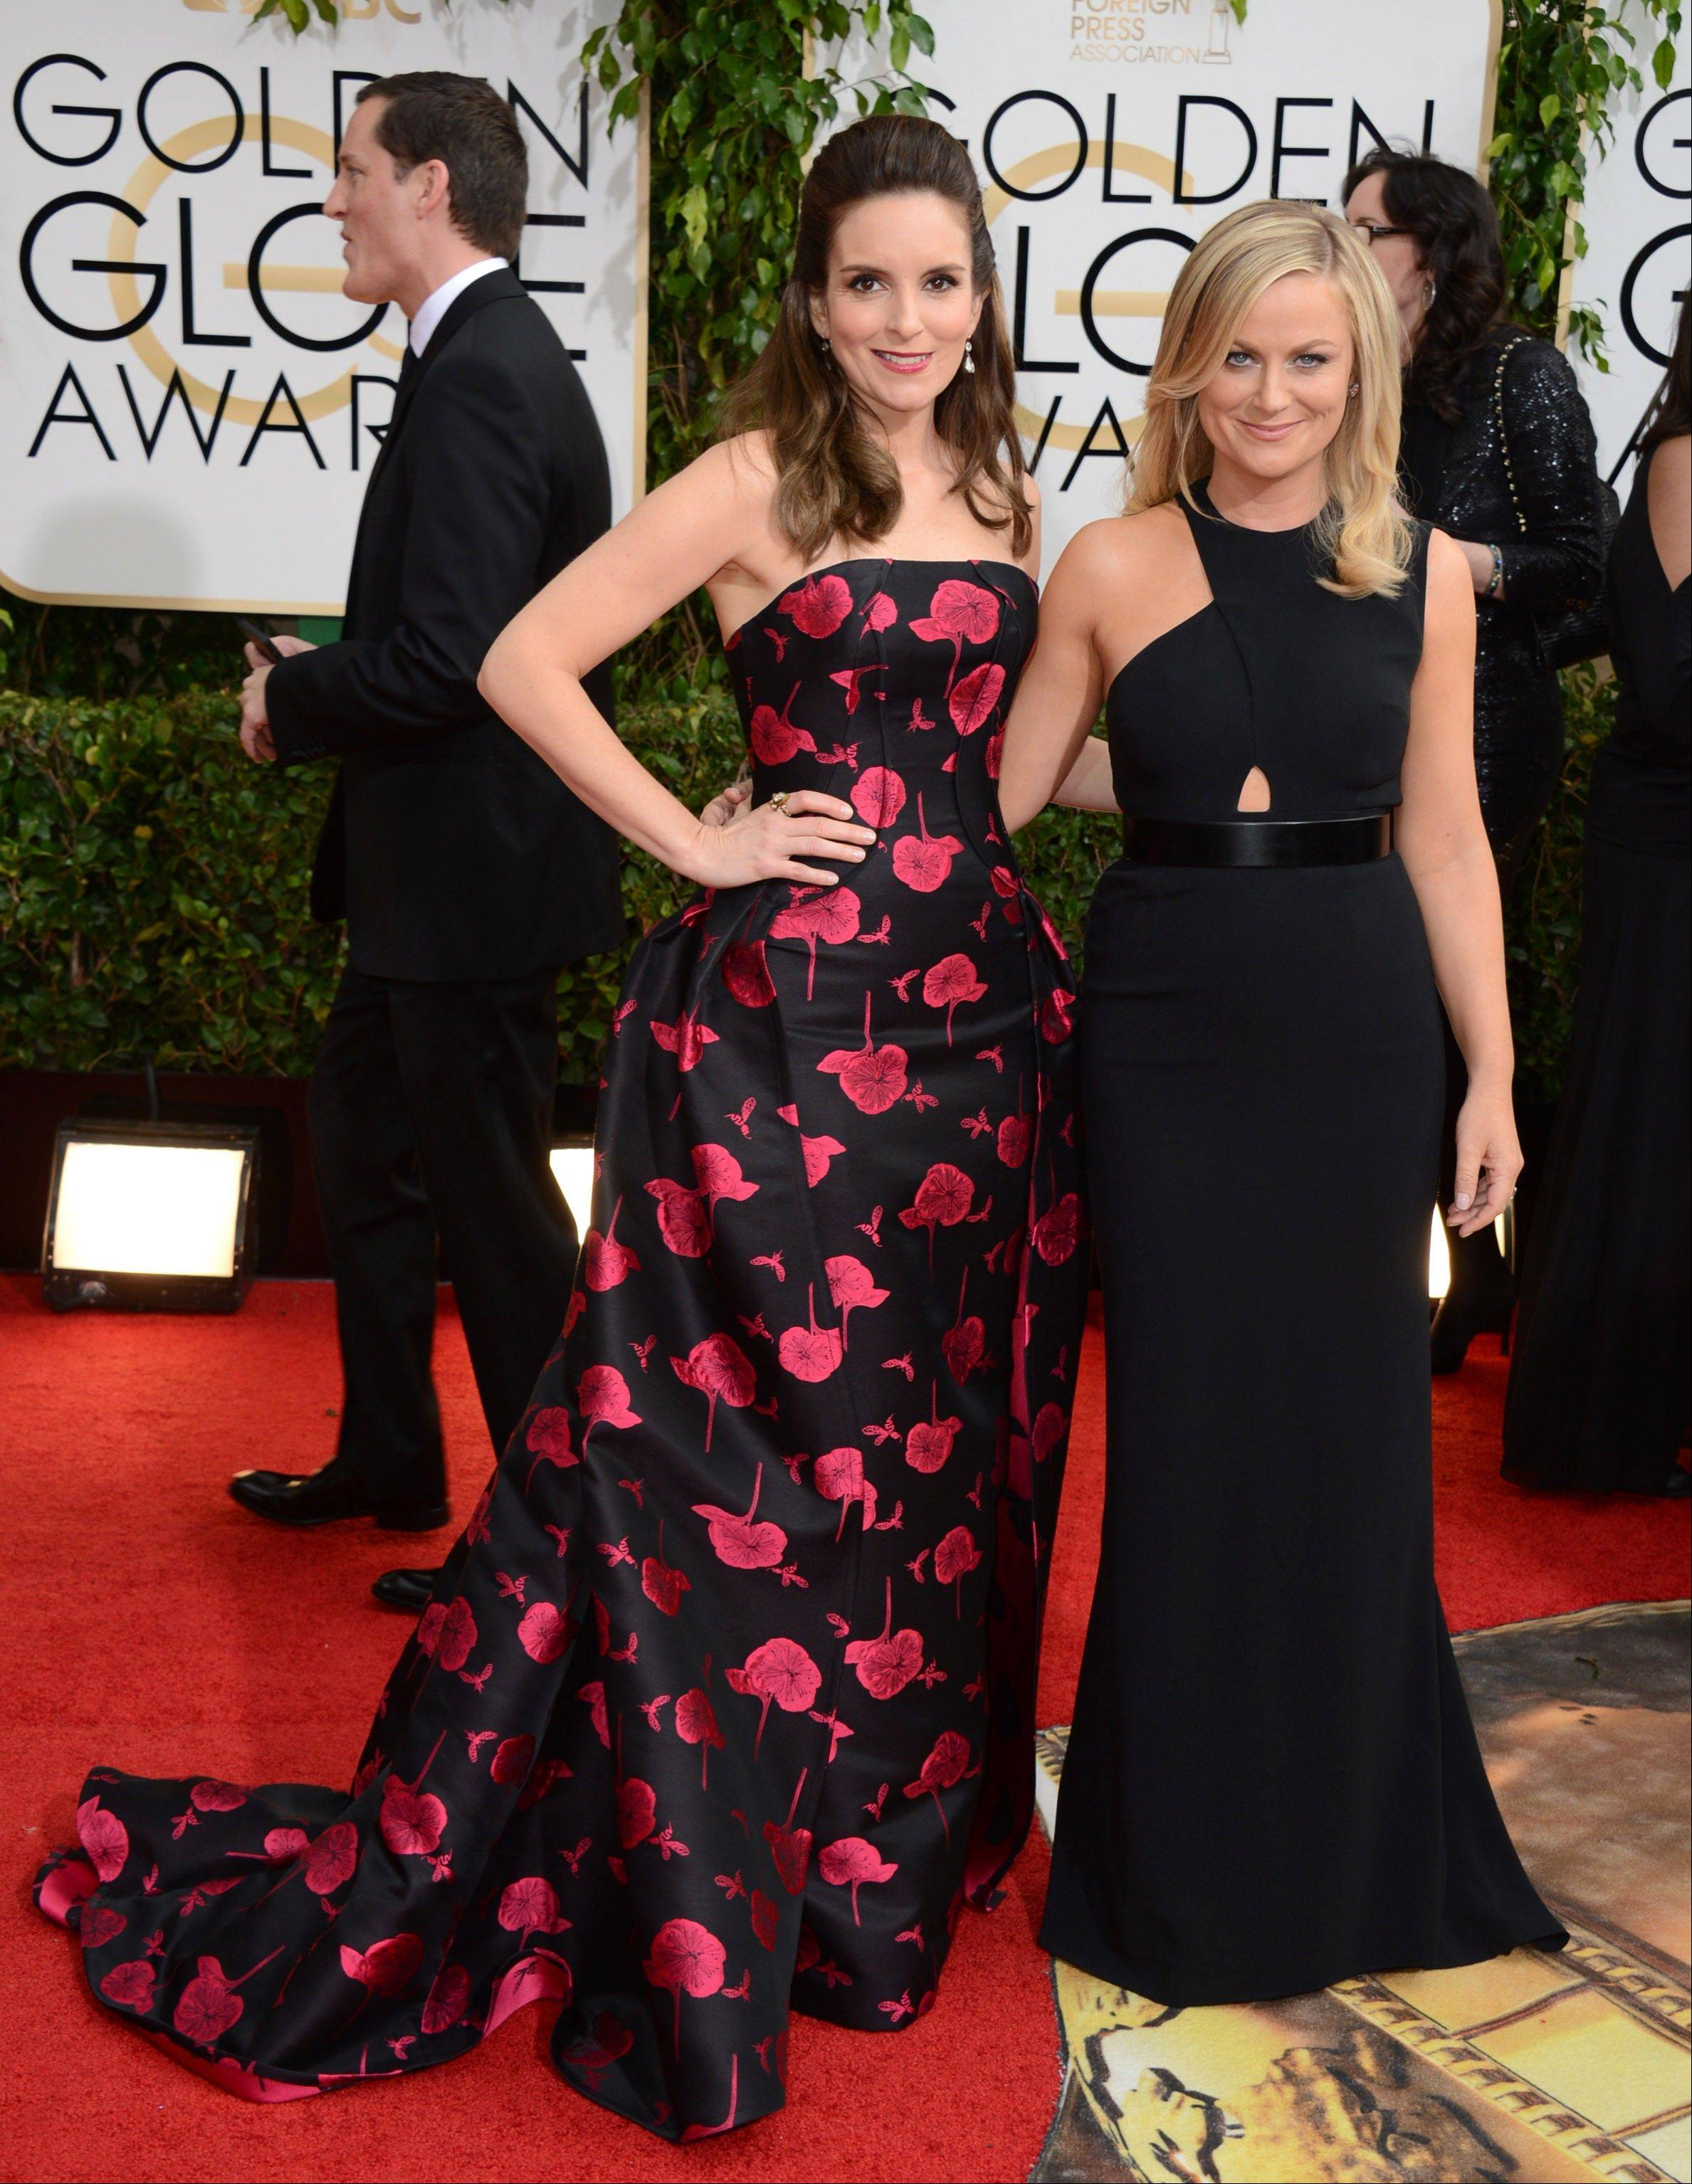 Golden Globes hosts Tina Fey, left, and Amy Poehler walk the red carpet Sunday in Beverly Hills, Calif.